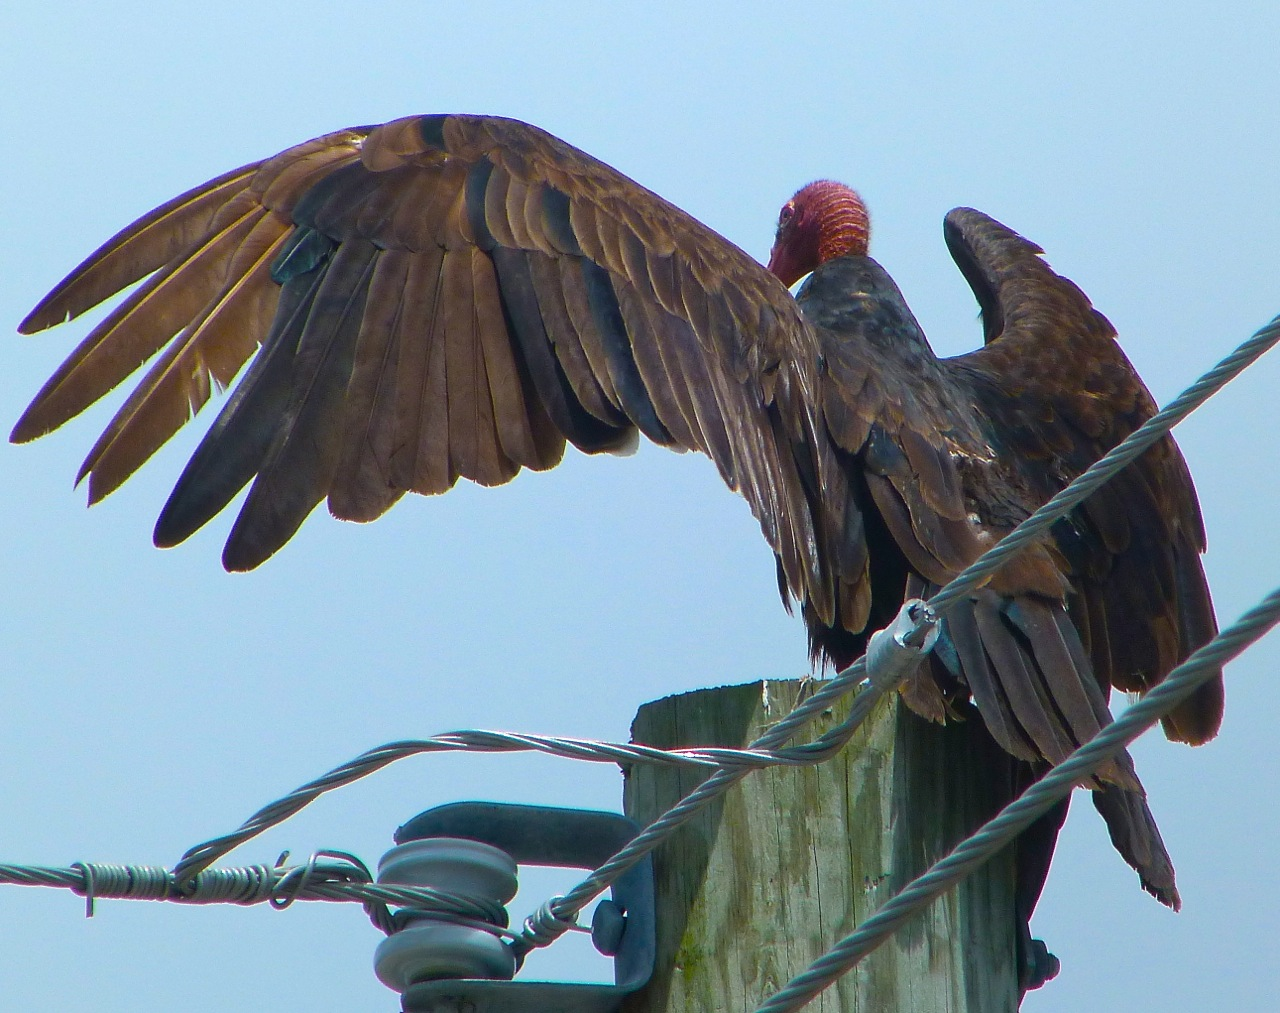 Turkey Vulture Abaco Bahamas (Keith Salvesen)